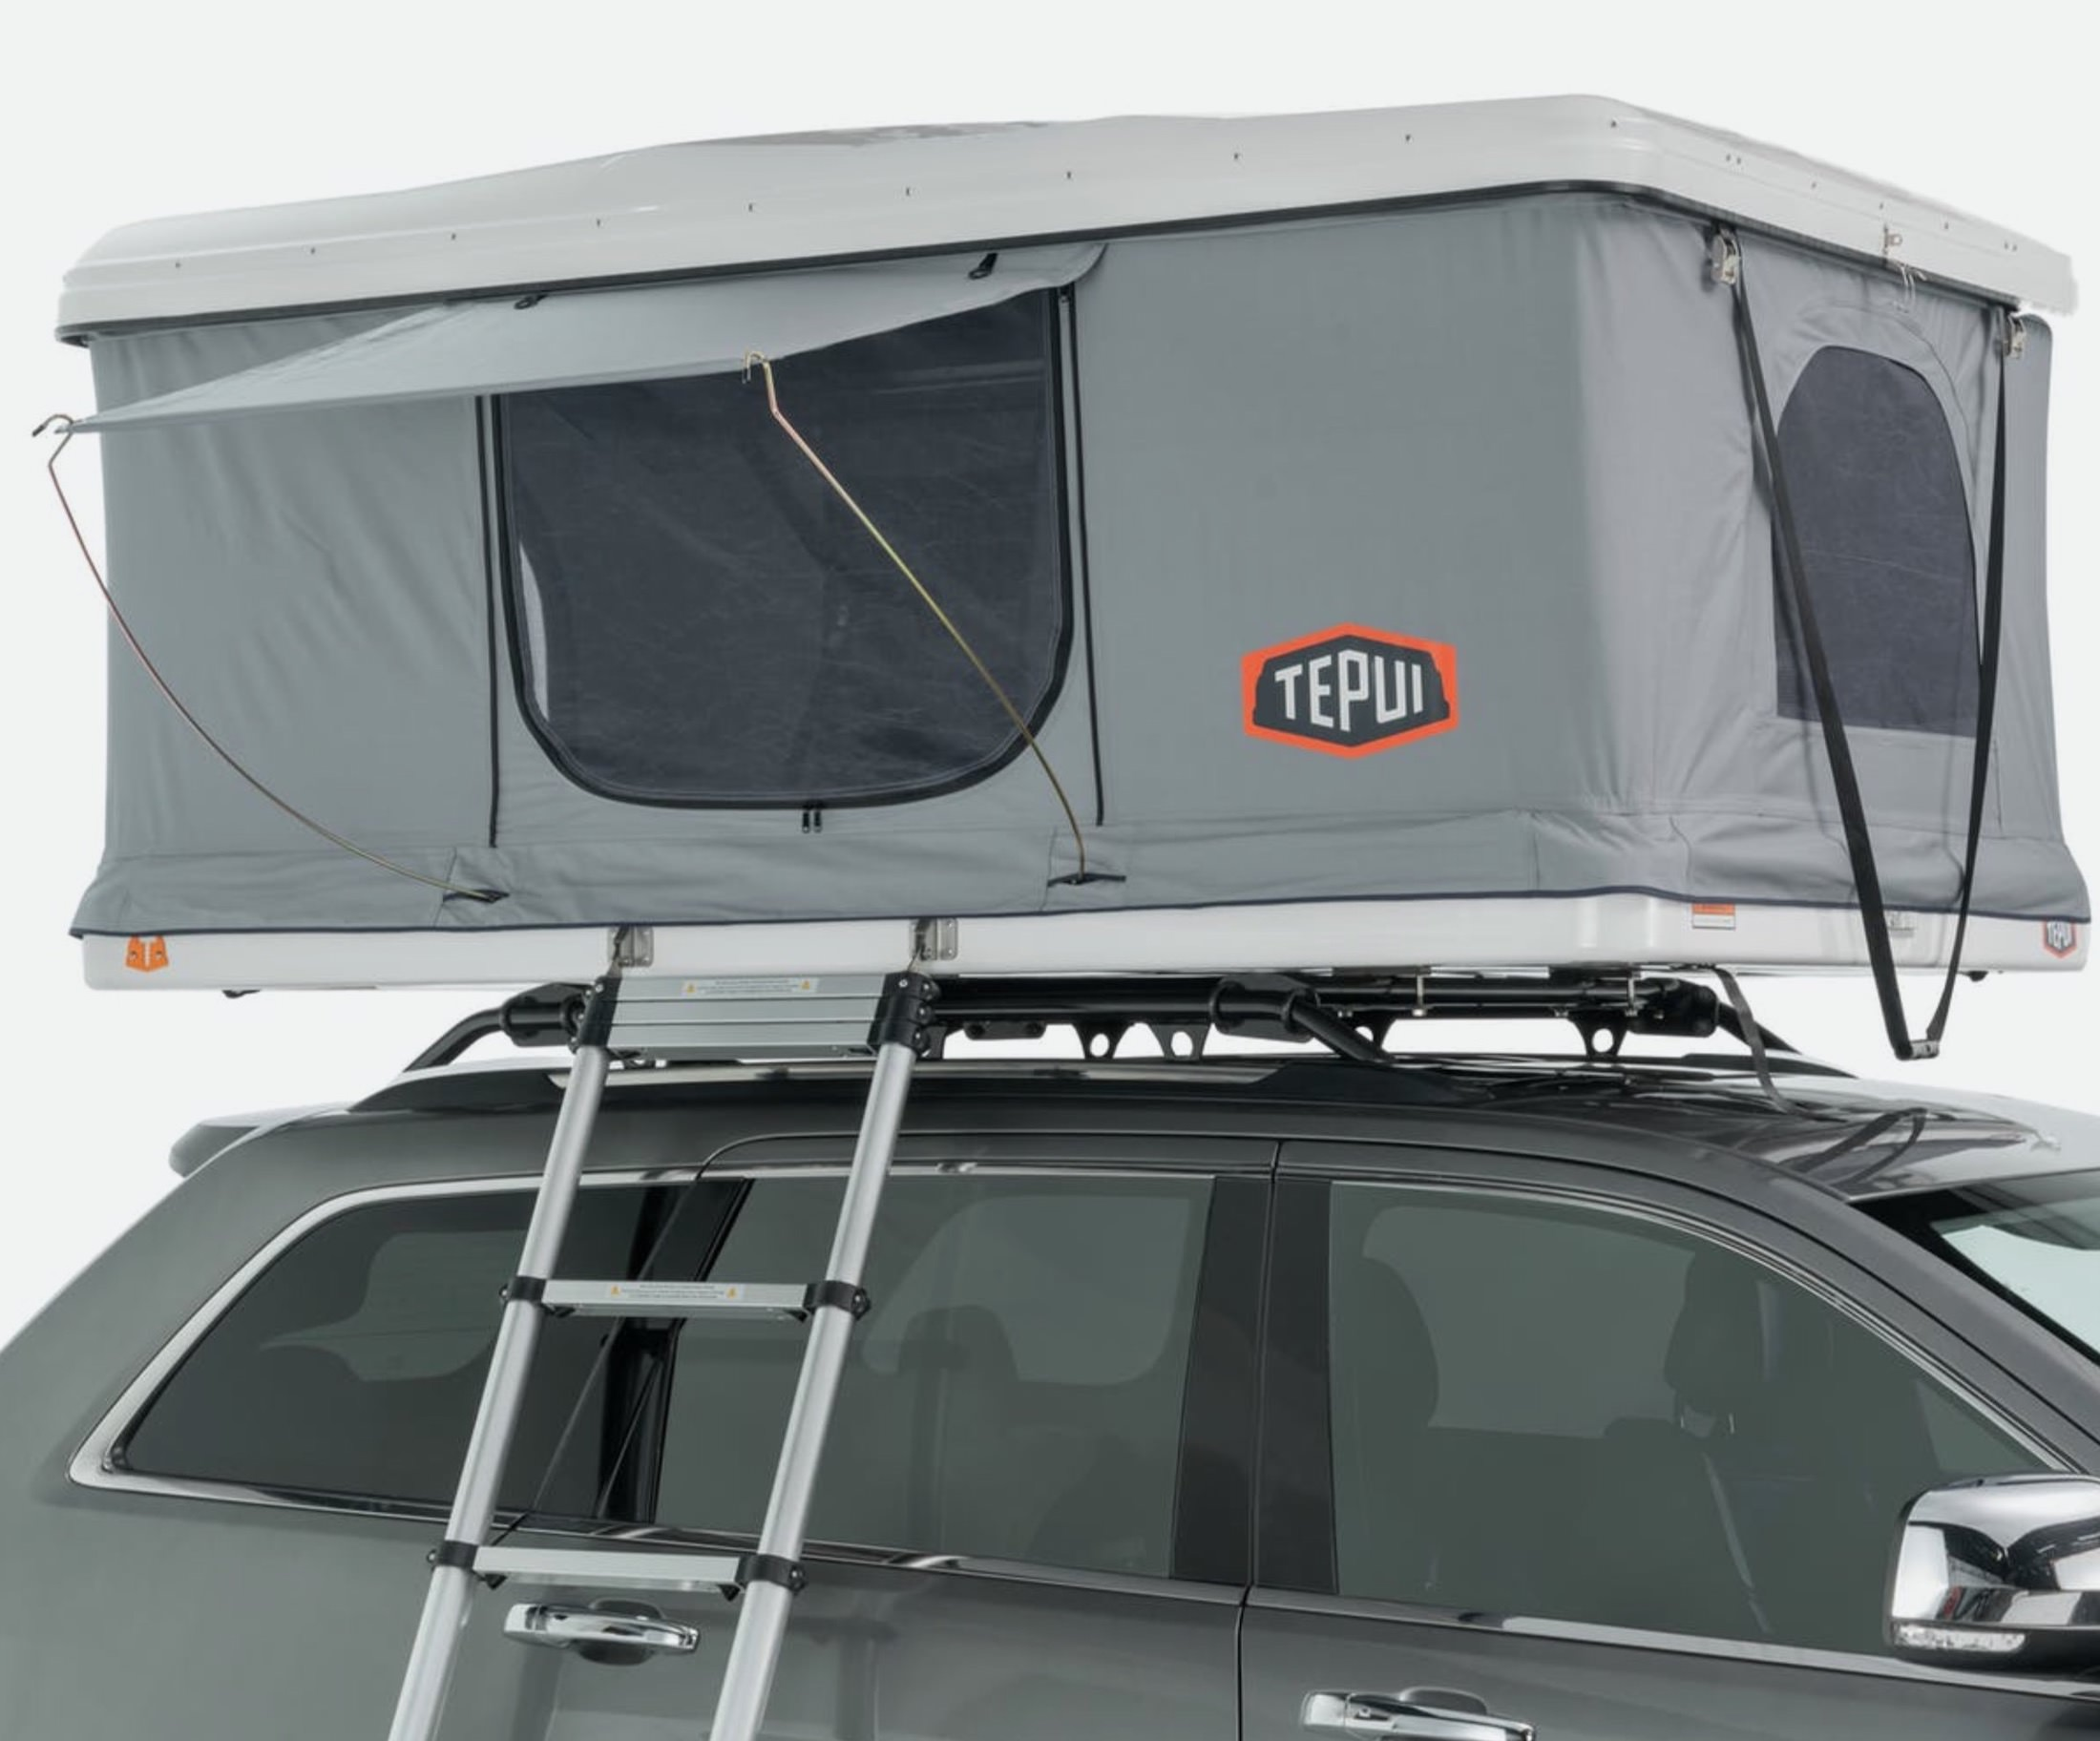 The Tepui Hybox Rooftop Tent - Suitable For Cars, Trucks ...